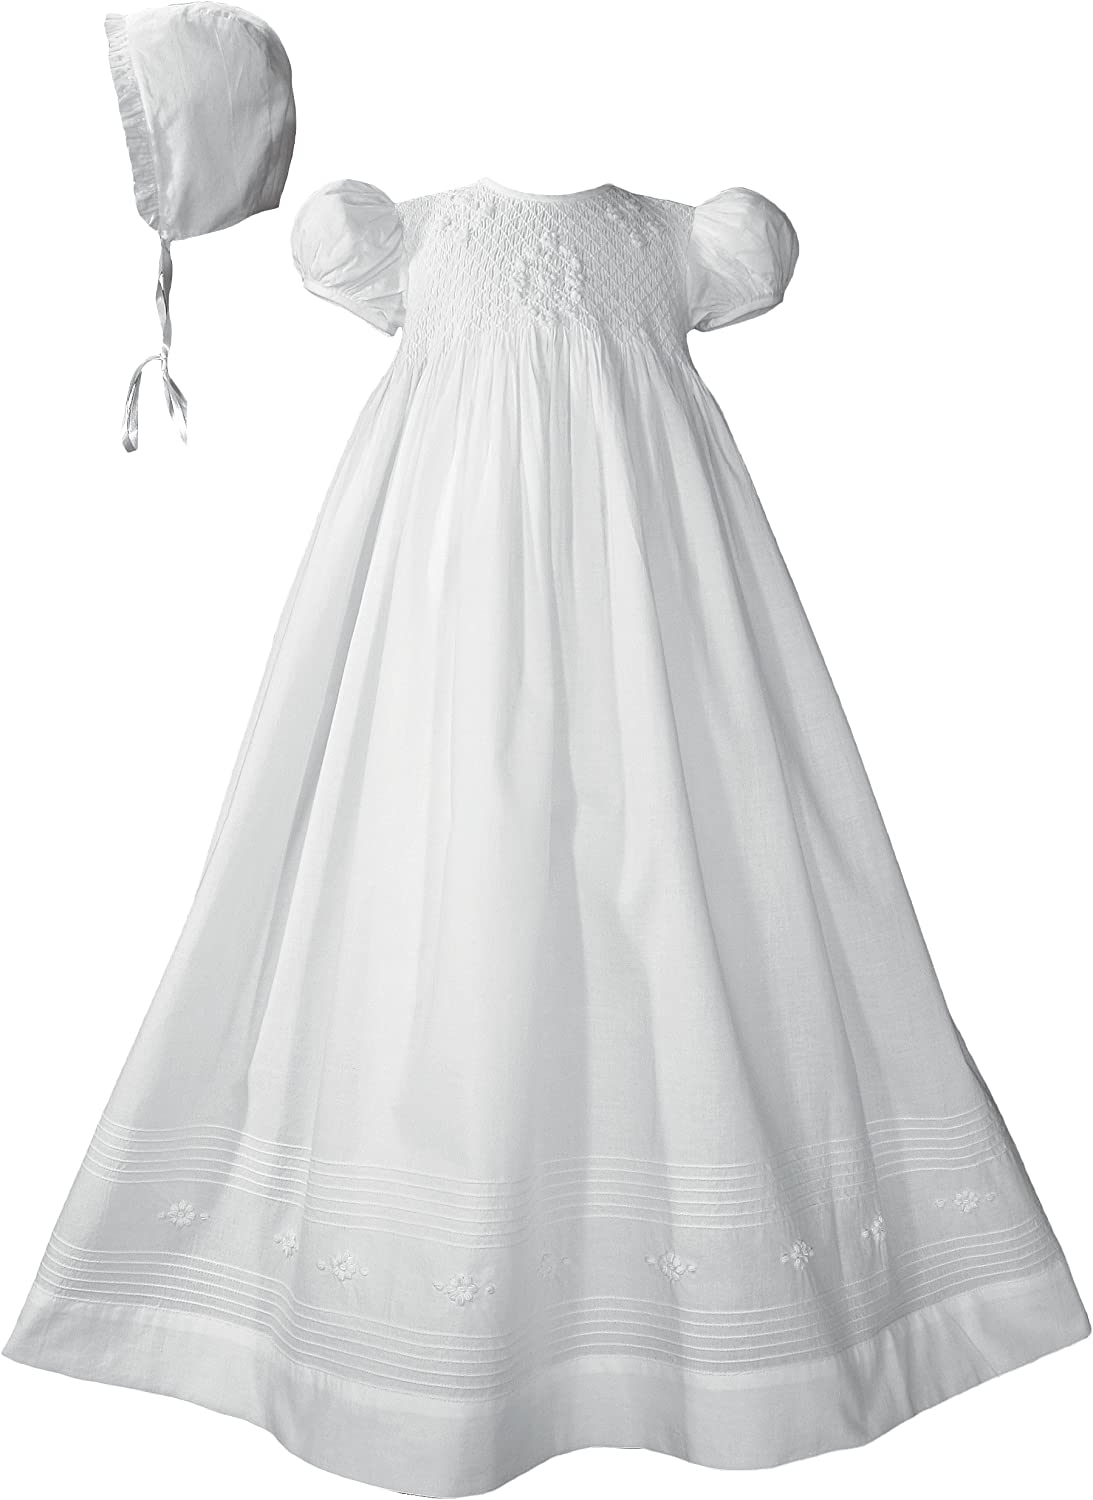 Image of 32' Girls Cotton Hand Smocked Christening Gown Baptism Dress with Hand Embroidery